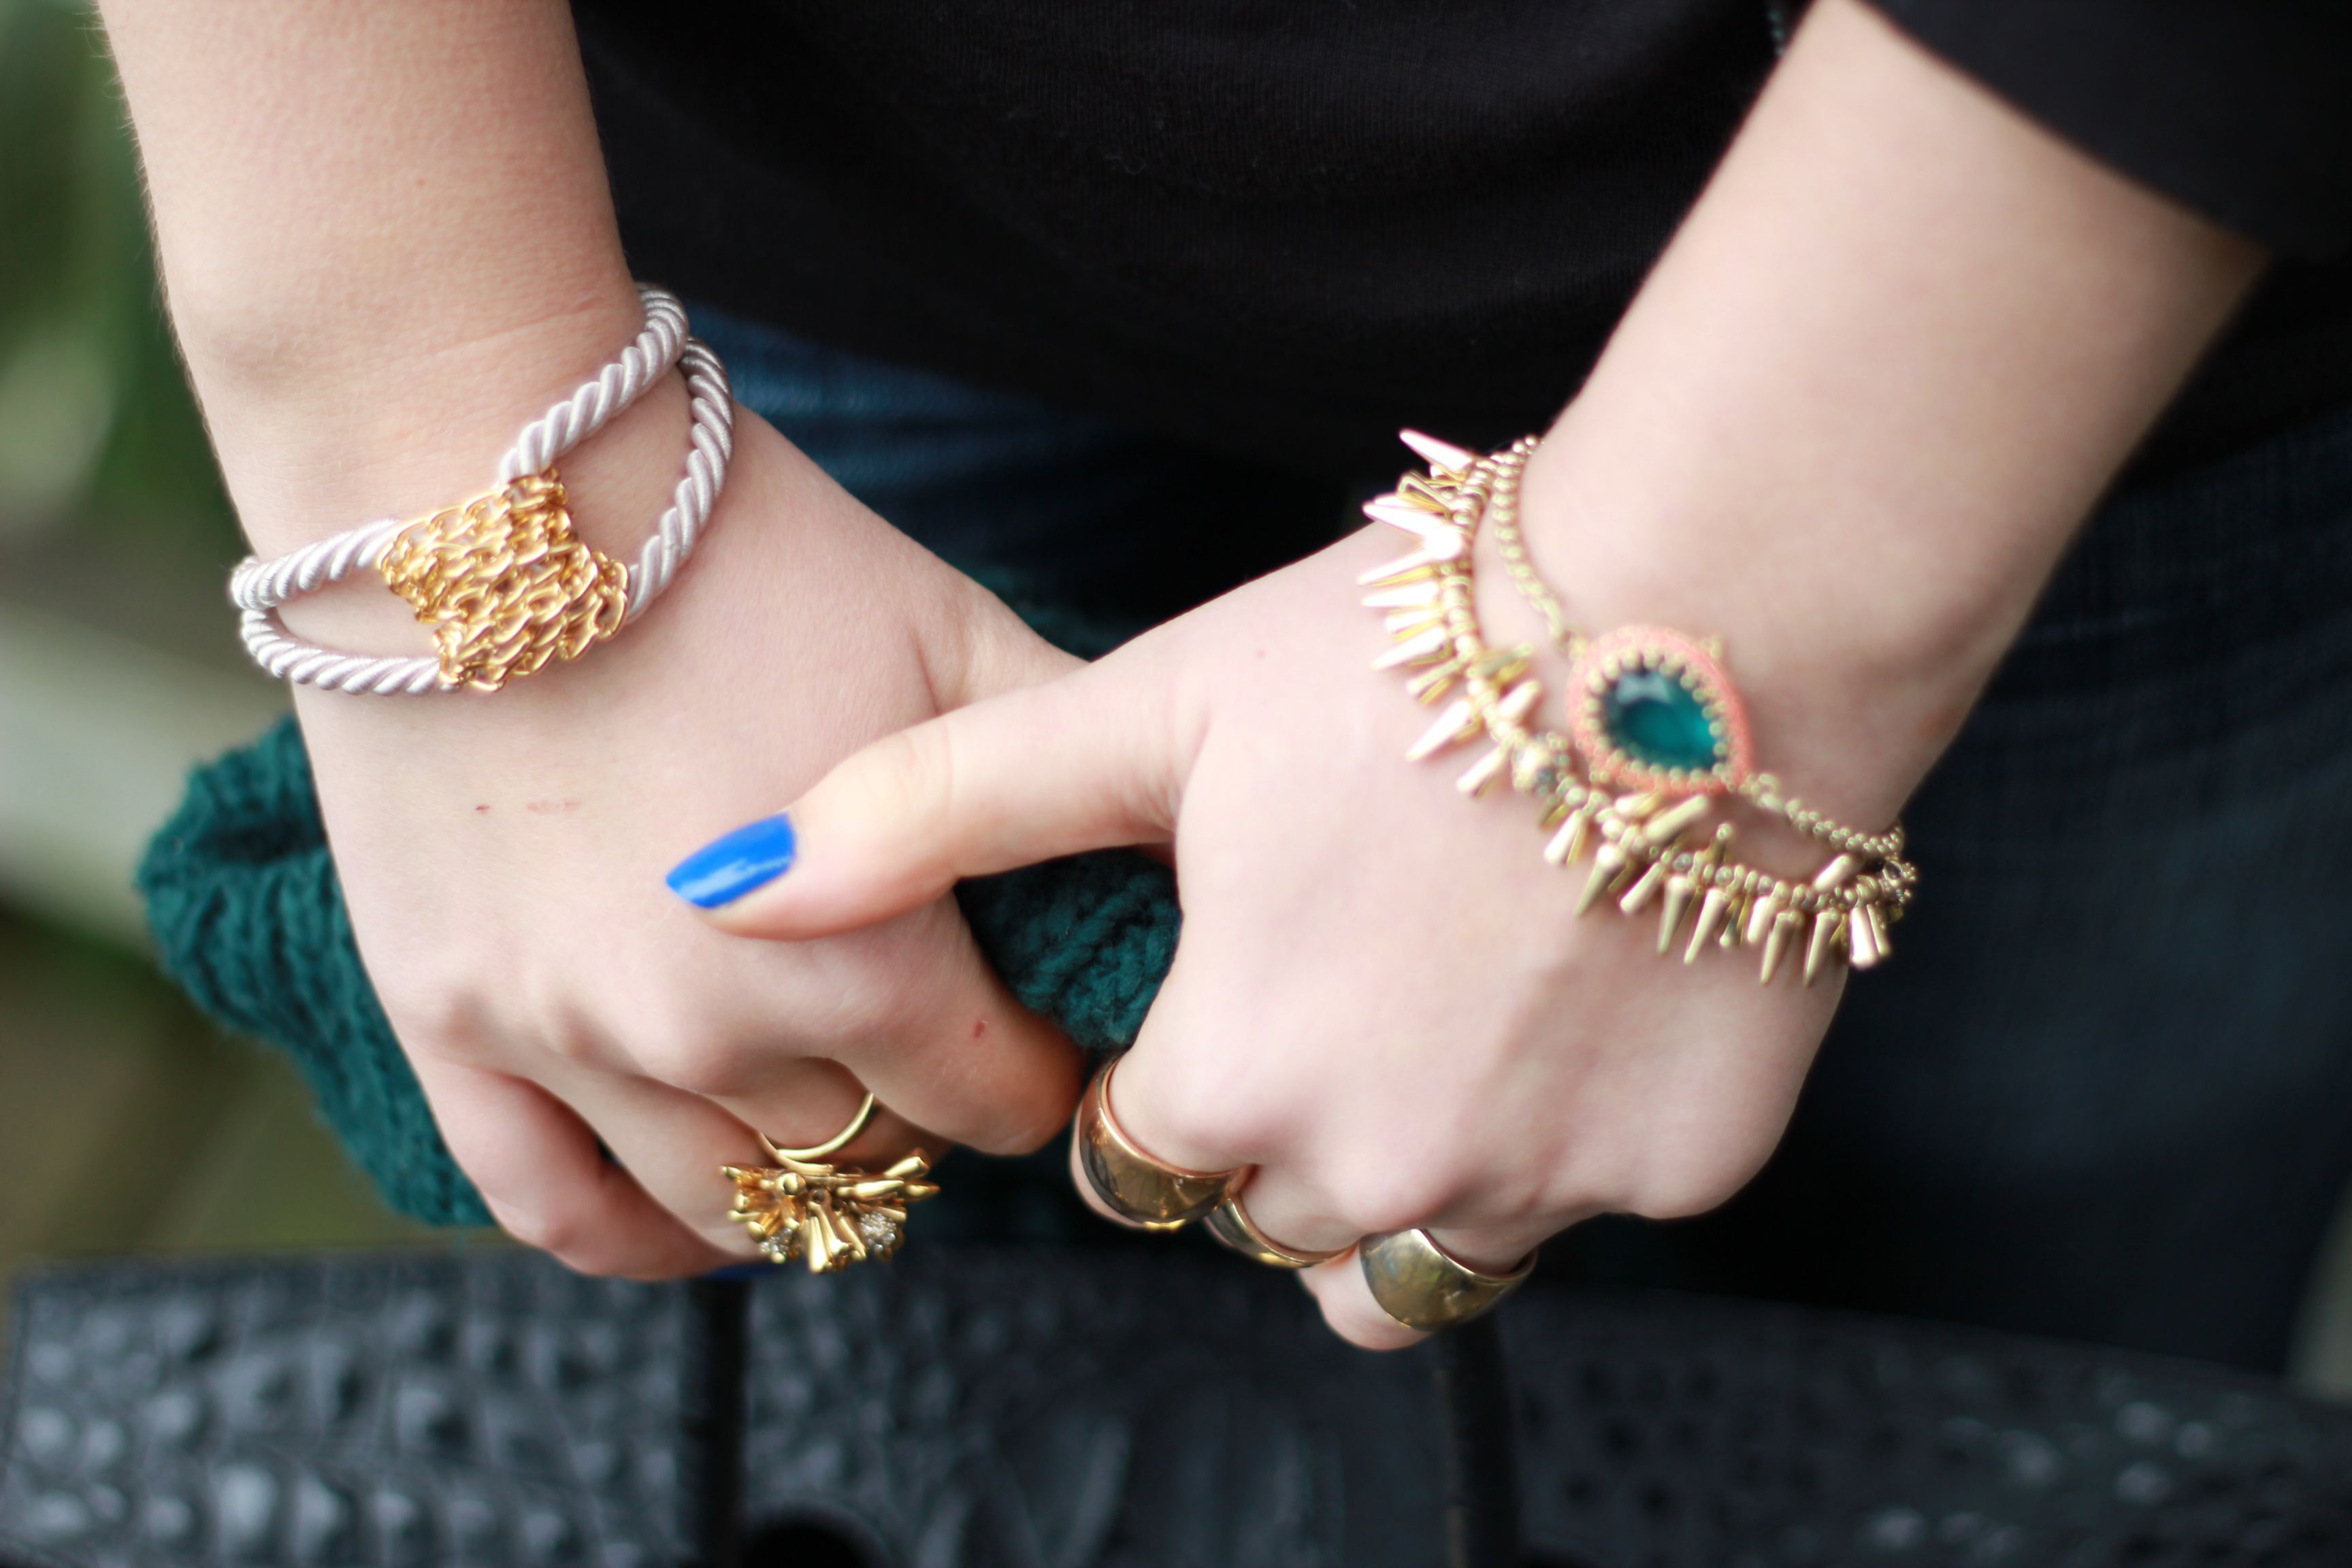 beautiful rings in hands - Google Search   $tunínG ríng ...